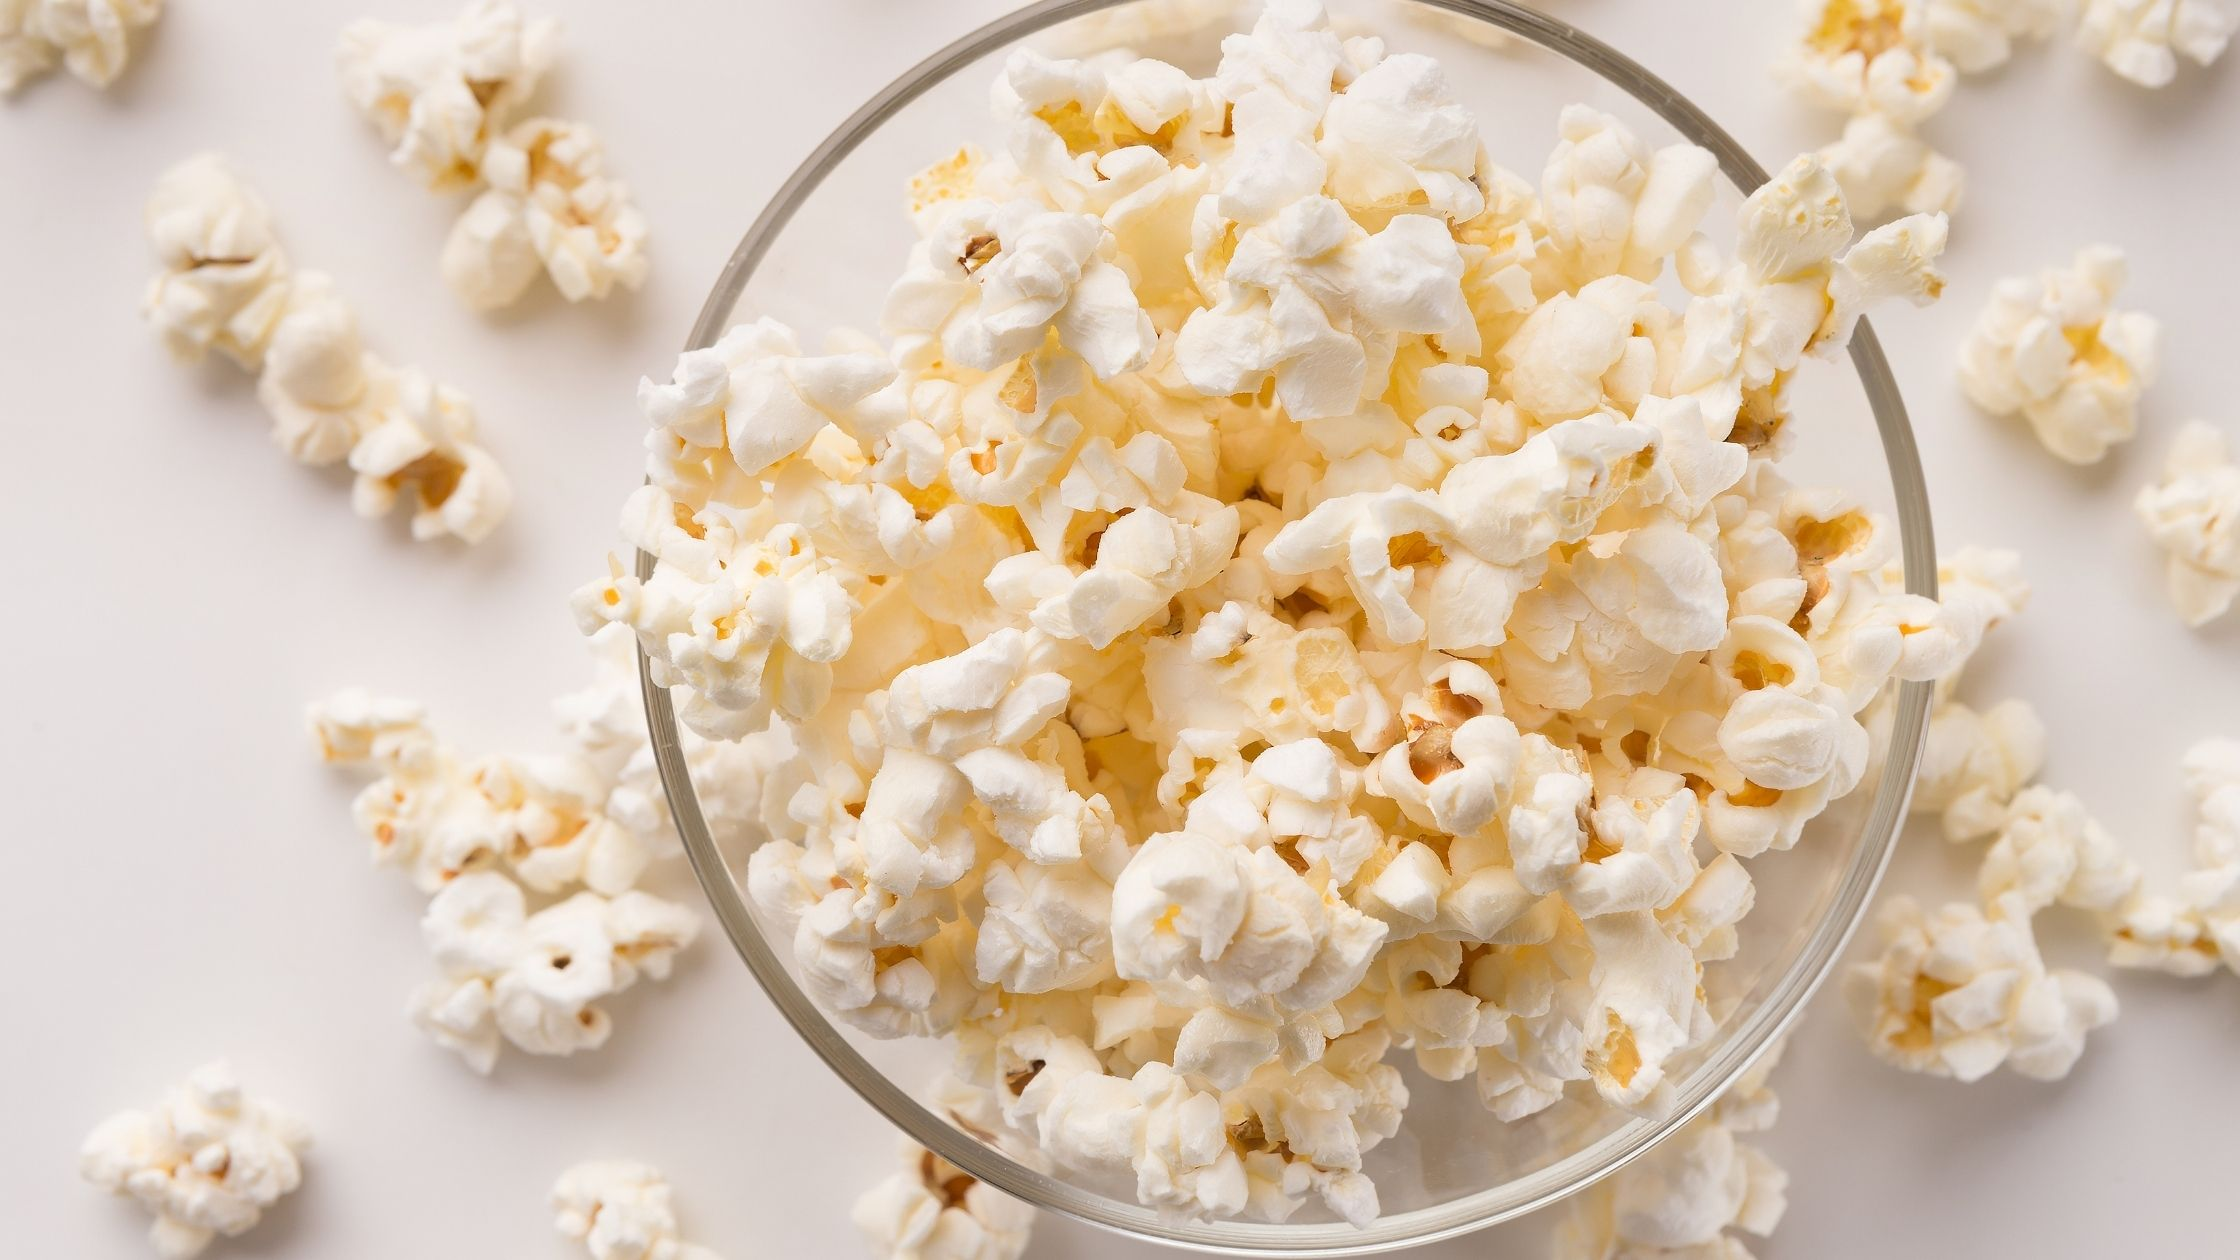 Can You Eat Popcorn on Keto Diet?